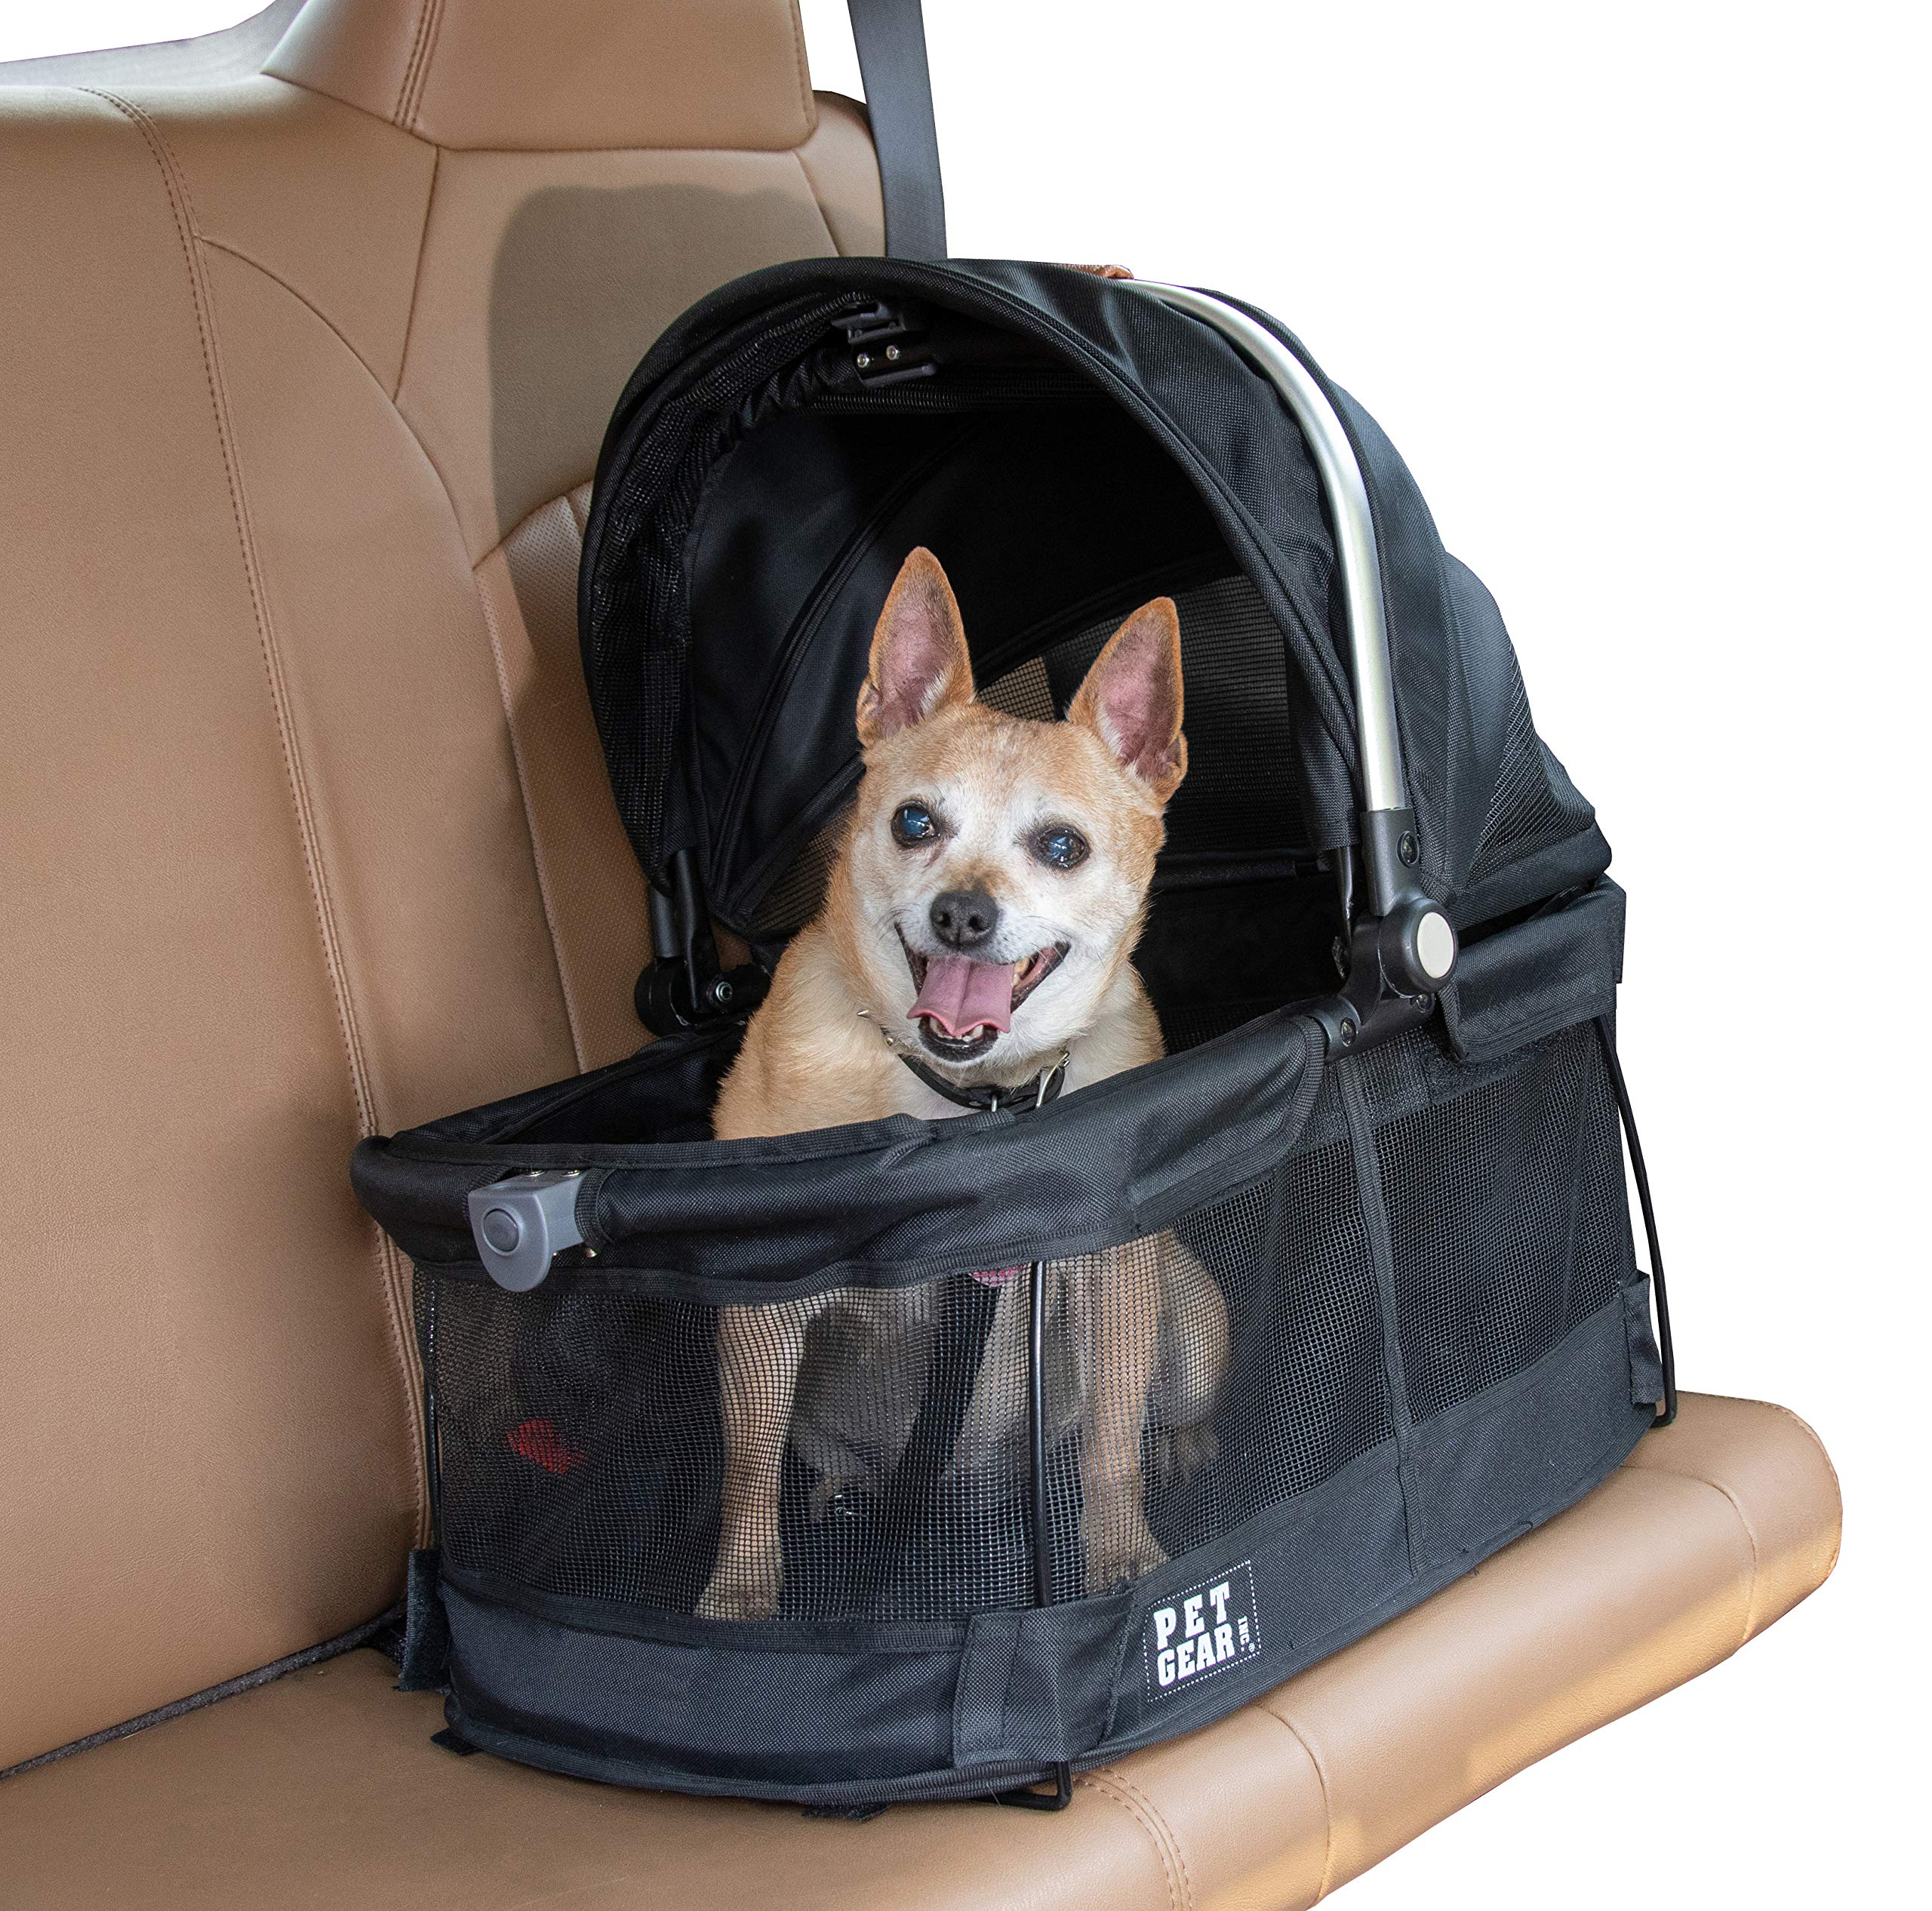 Pet Gear View 360 Pet Carrier & Car Seat for Small Dogs & Cats with Mesh Ventilation for Easy Viewing by Pet Gear